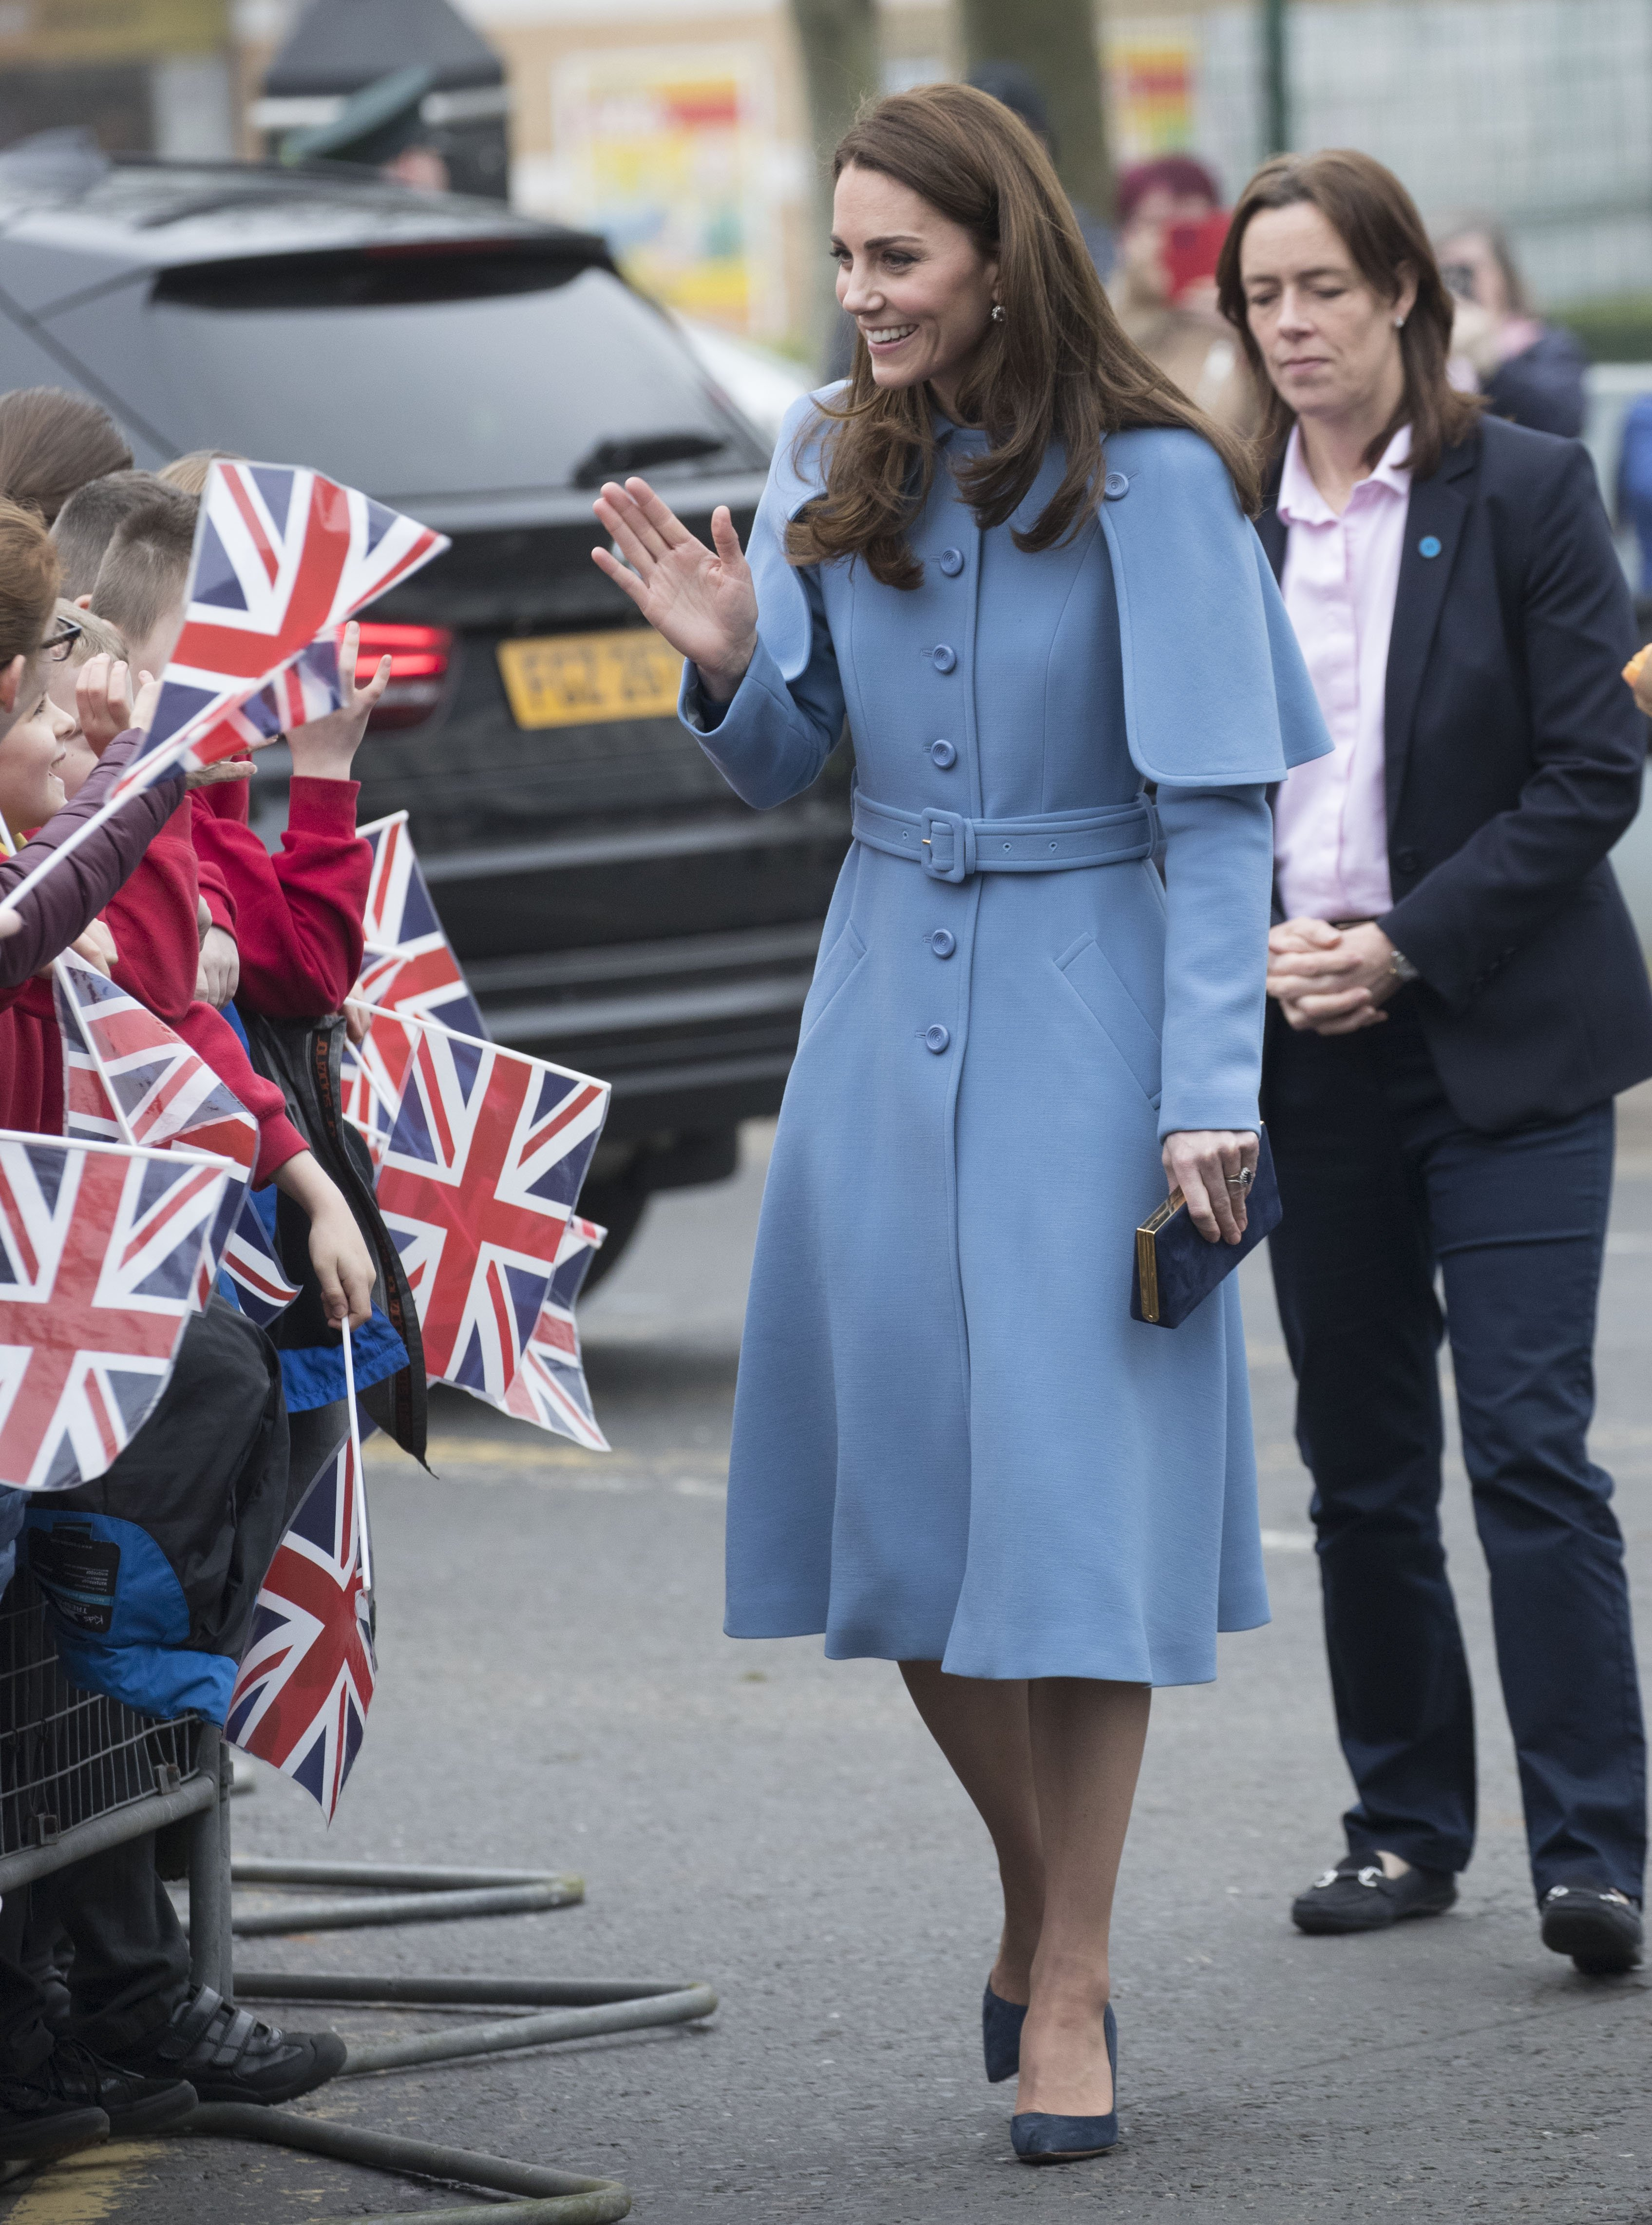 Kate Middleton, the Duchess of Cambridge, meeting well-wishers in Ballymena, Northern Ireland | Photo: Getty Images